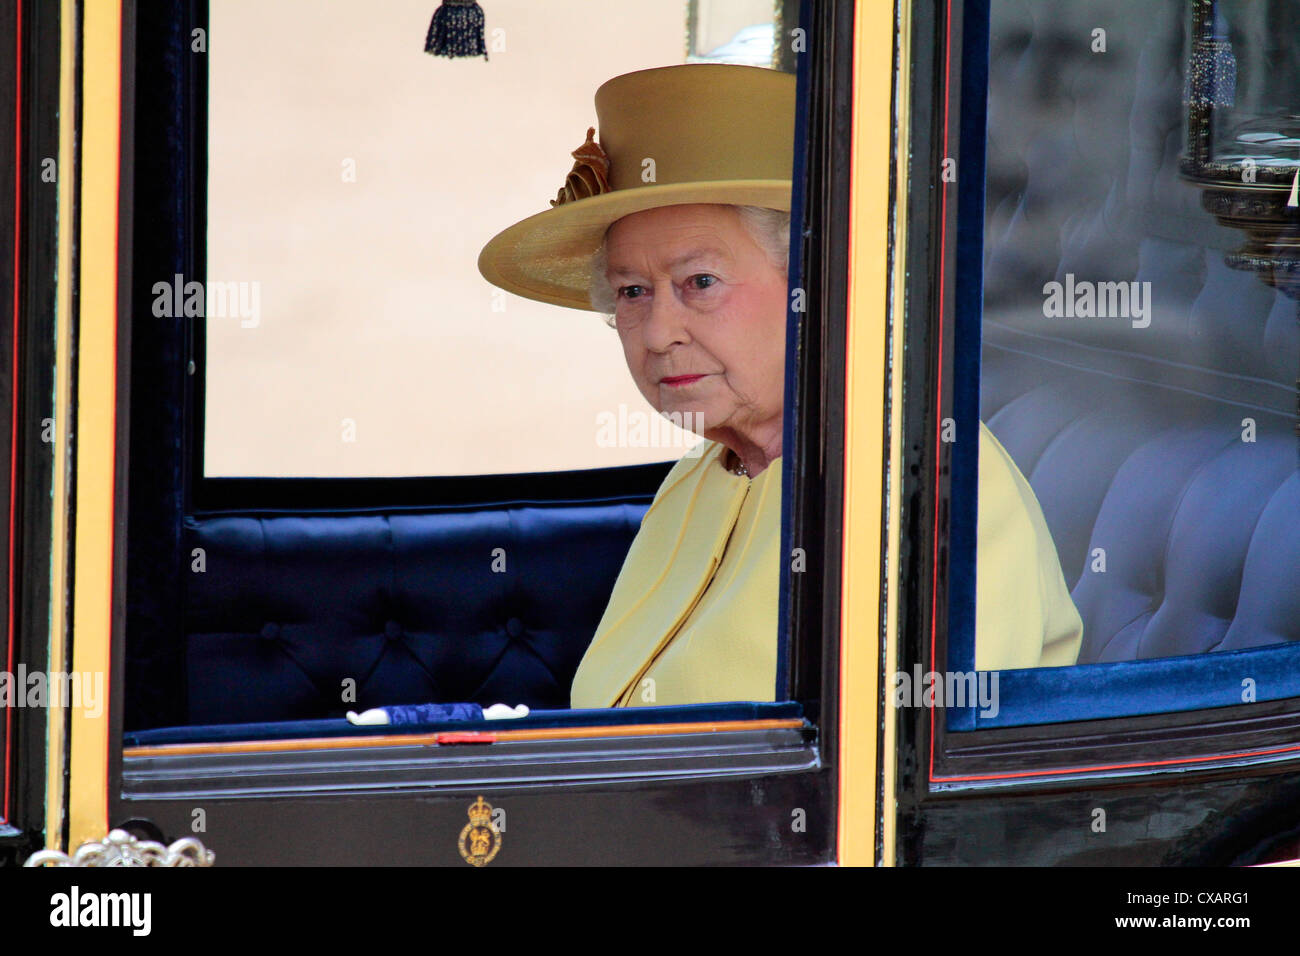 HM The Queen, Trooping the Colour 2012, The Queen's Birthday Parade, Whitehall, Horse Guards, London, England, - Stock Image